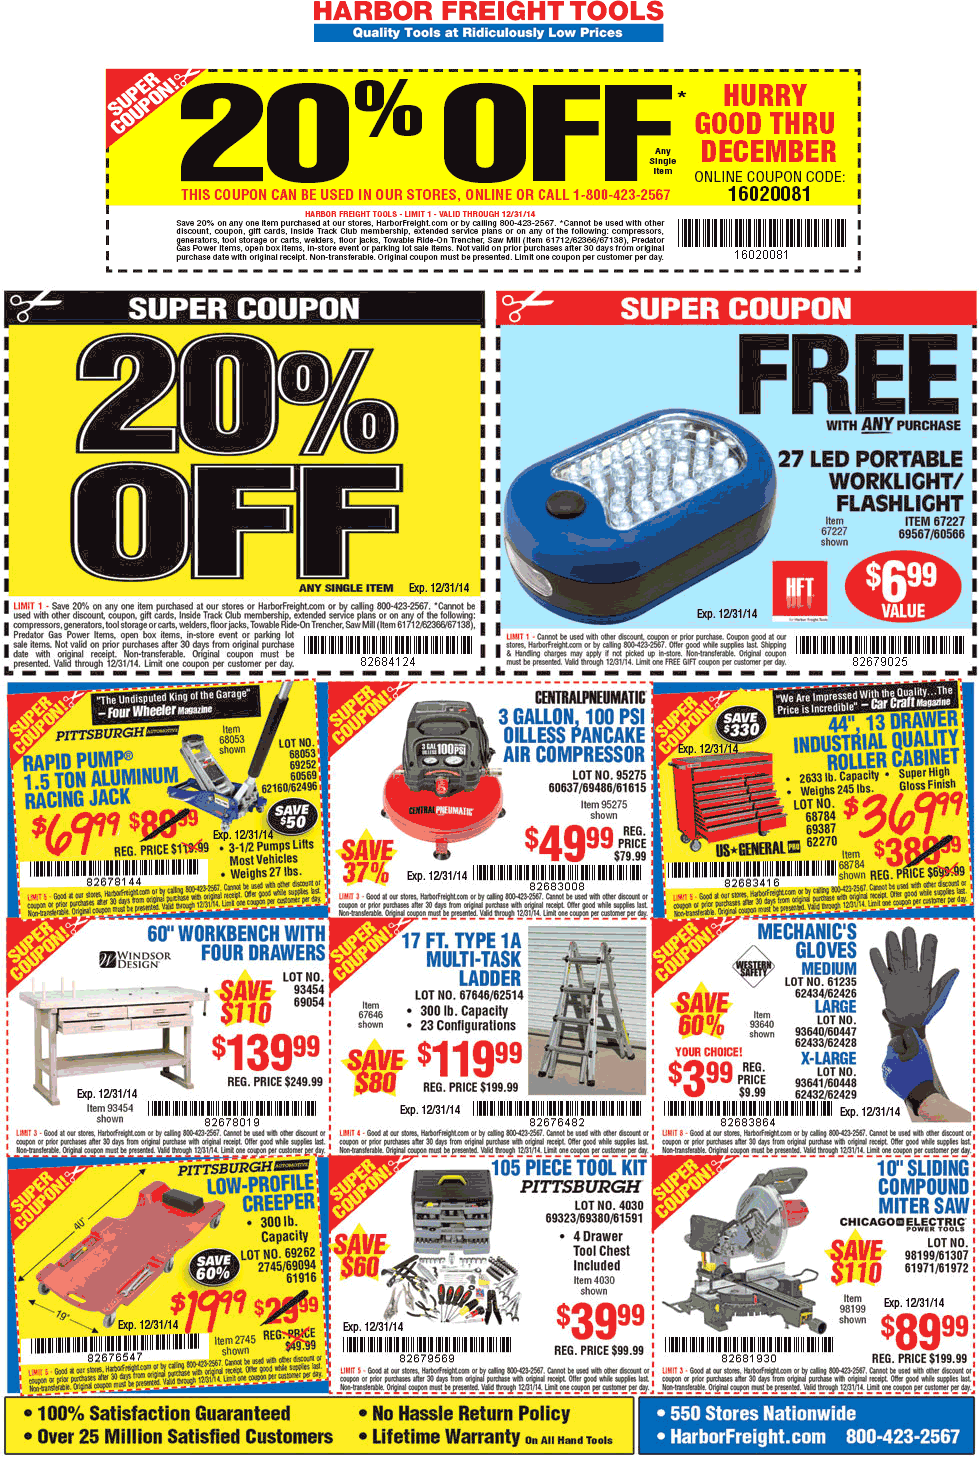 Harbor Freight Coupon August 2019 20% off a single item & more at Harbor Freight Tools, or online via promo code 16020081